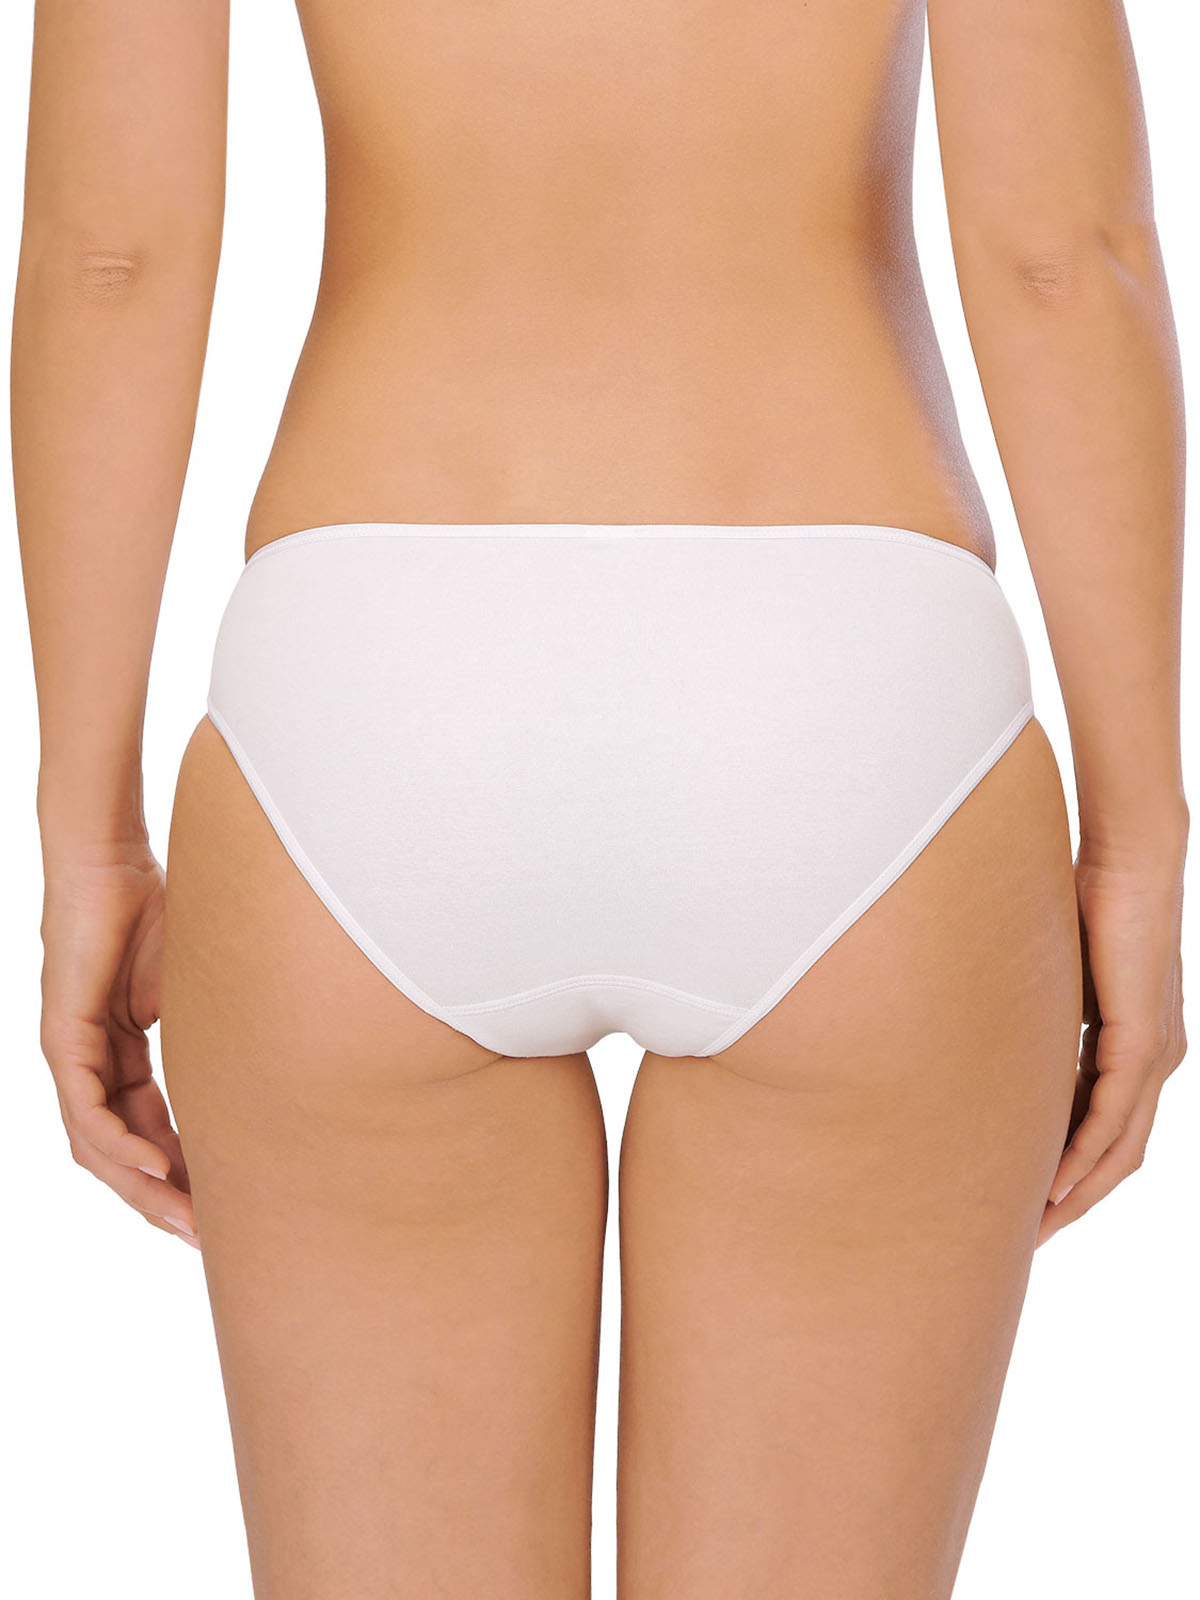 Naturana Women's Bikini Cotton Panties 4586